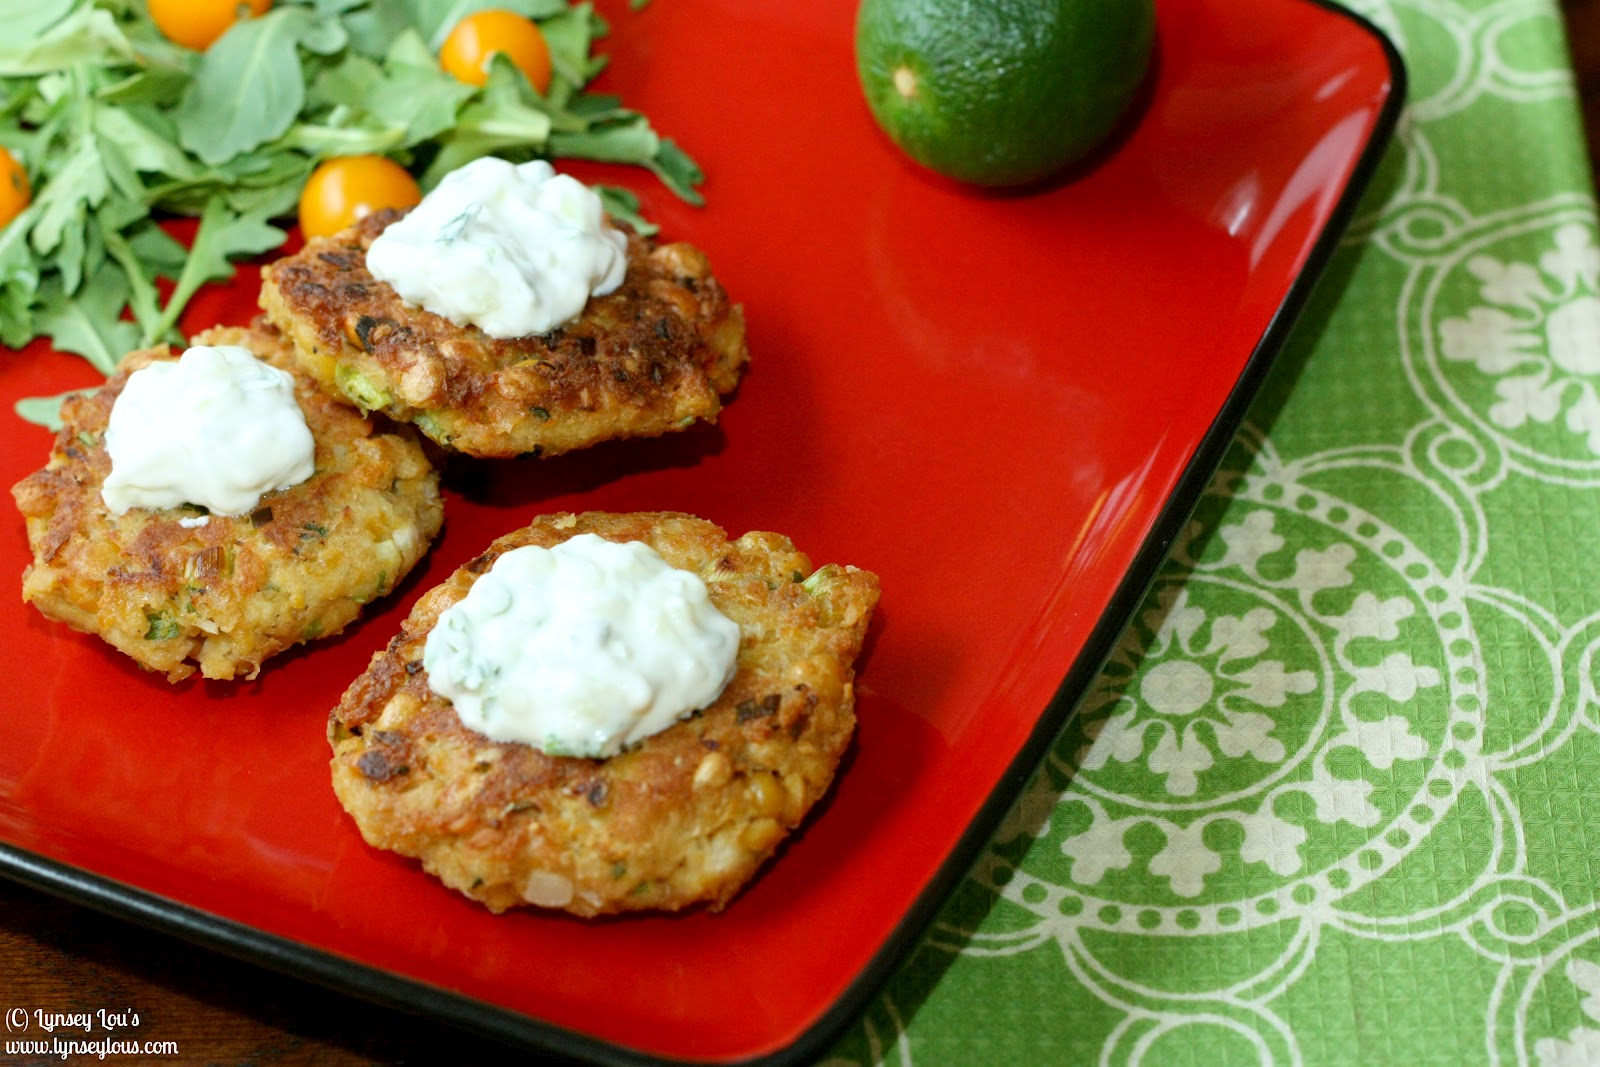 Lynsey Lou's: Chickpea Cakes with Cucumber-Yogurt Sauce